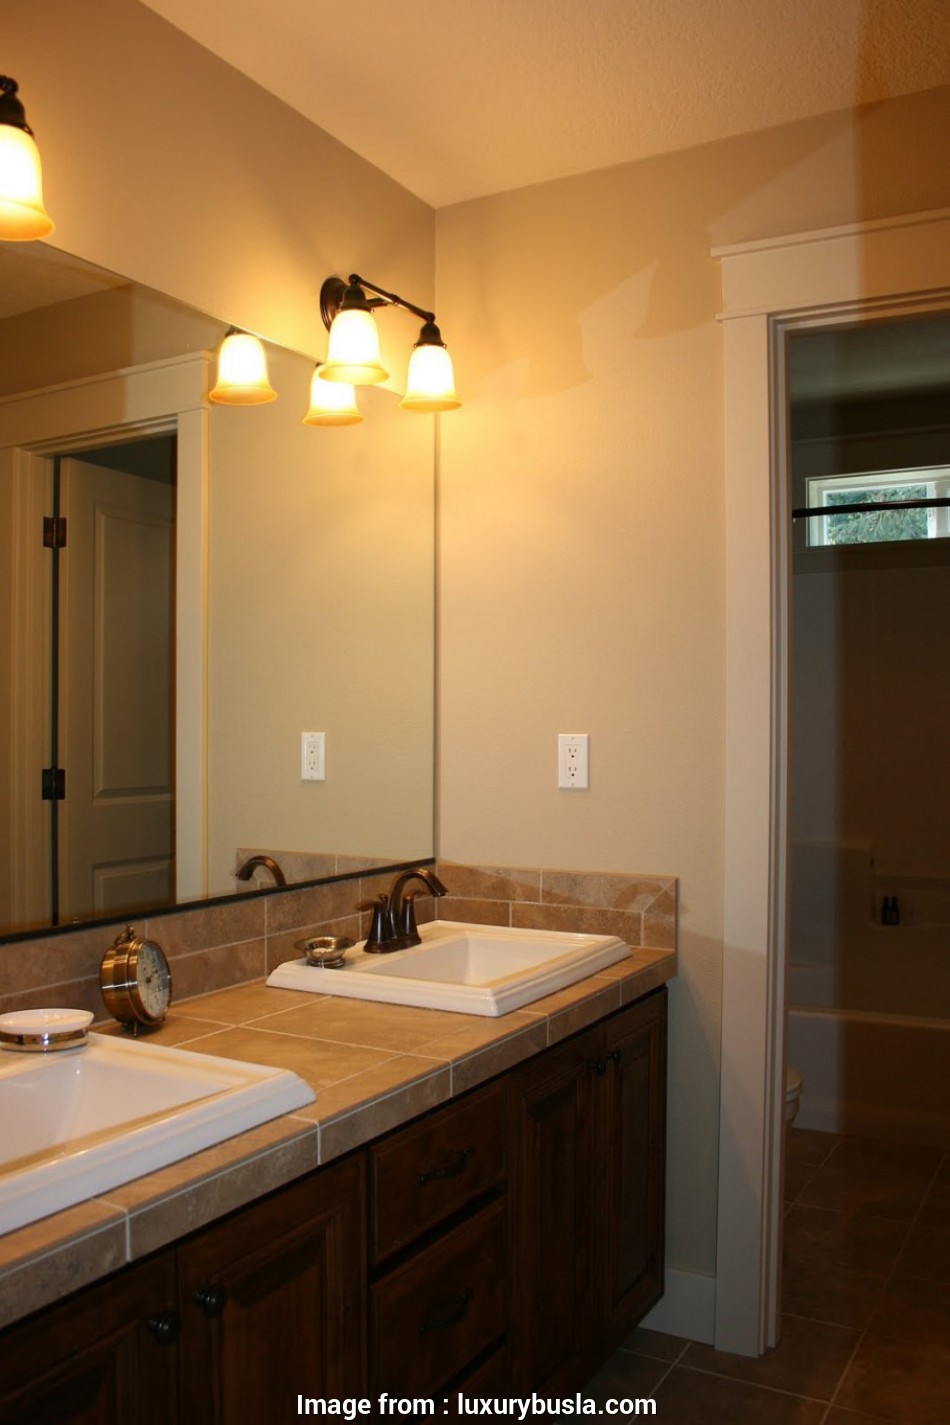 how to wire a vanity light in the bathroom bathroom, Beige Bathroom Design Idea Feat Awesome Frameless Mirror, Eclectic Twin Wall Mounted Lights How To Wire A Vanity Light In, Bathroom Popular Bathroom, Beige Bathroom Design Idea Feat Awesome Frameless Mirror, Eclectic Twin Wall Mounted Lights Images